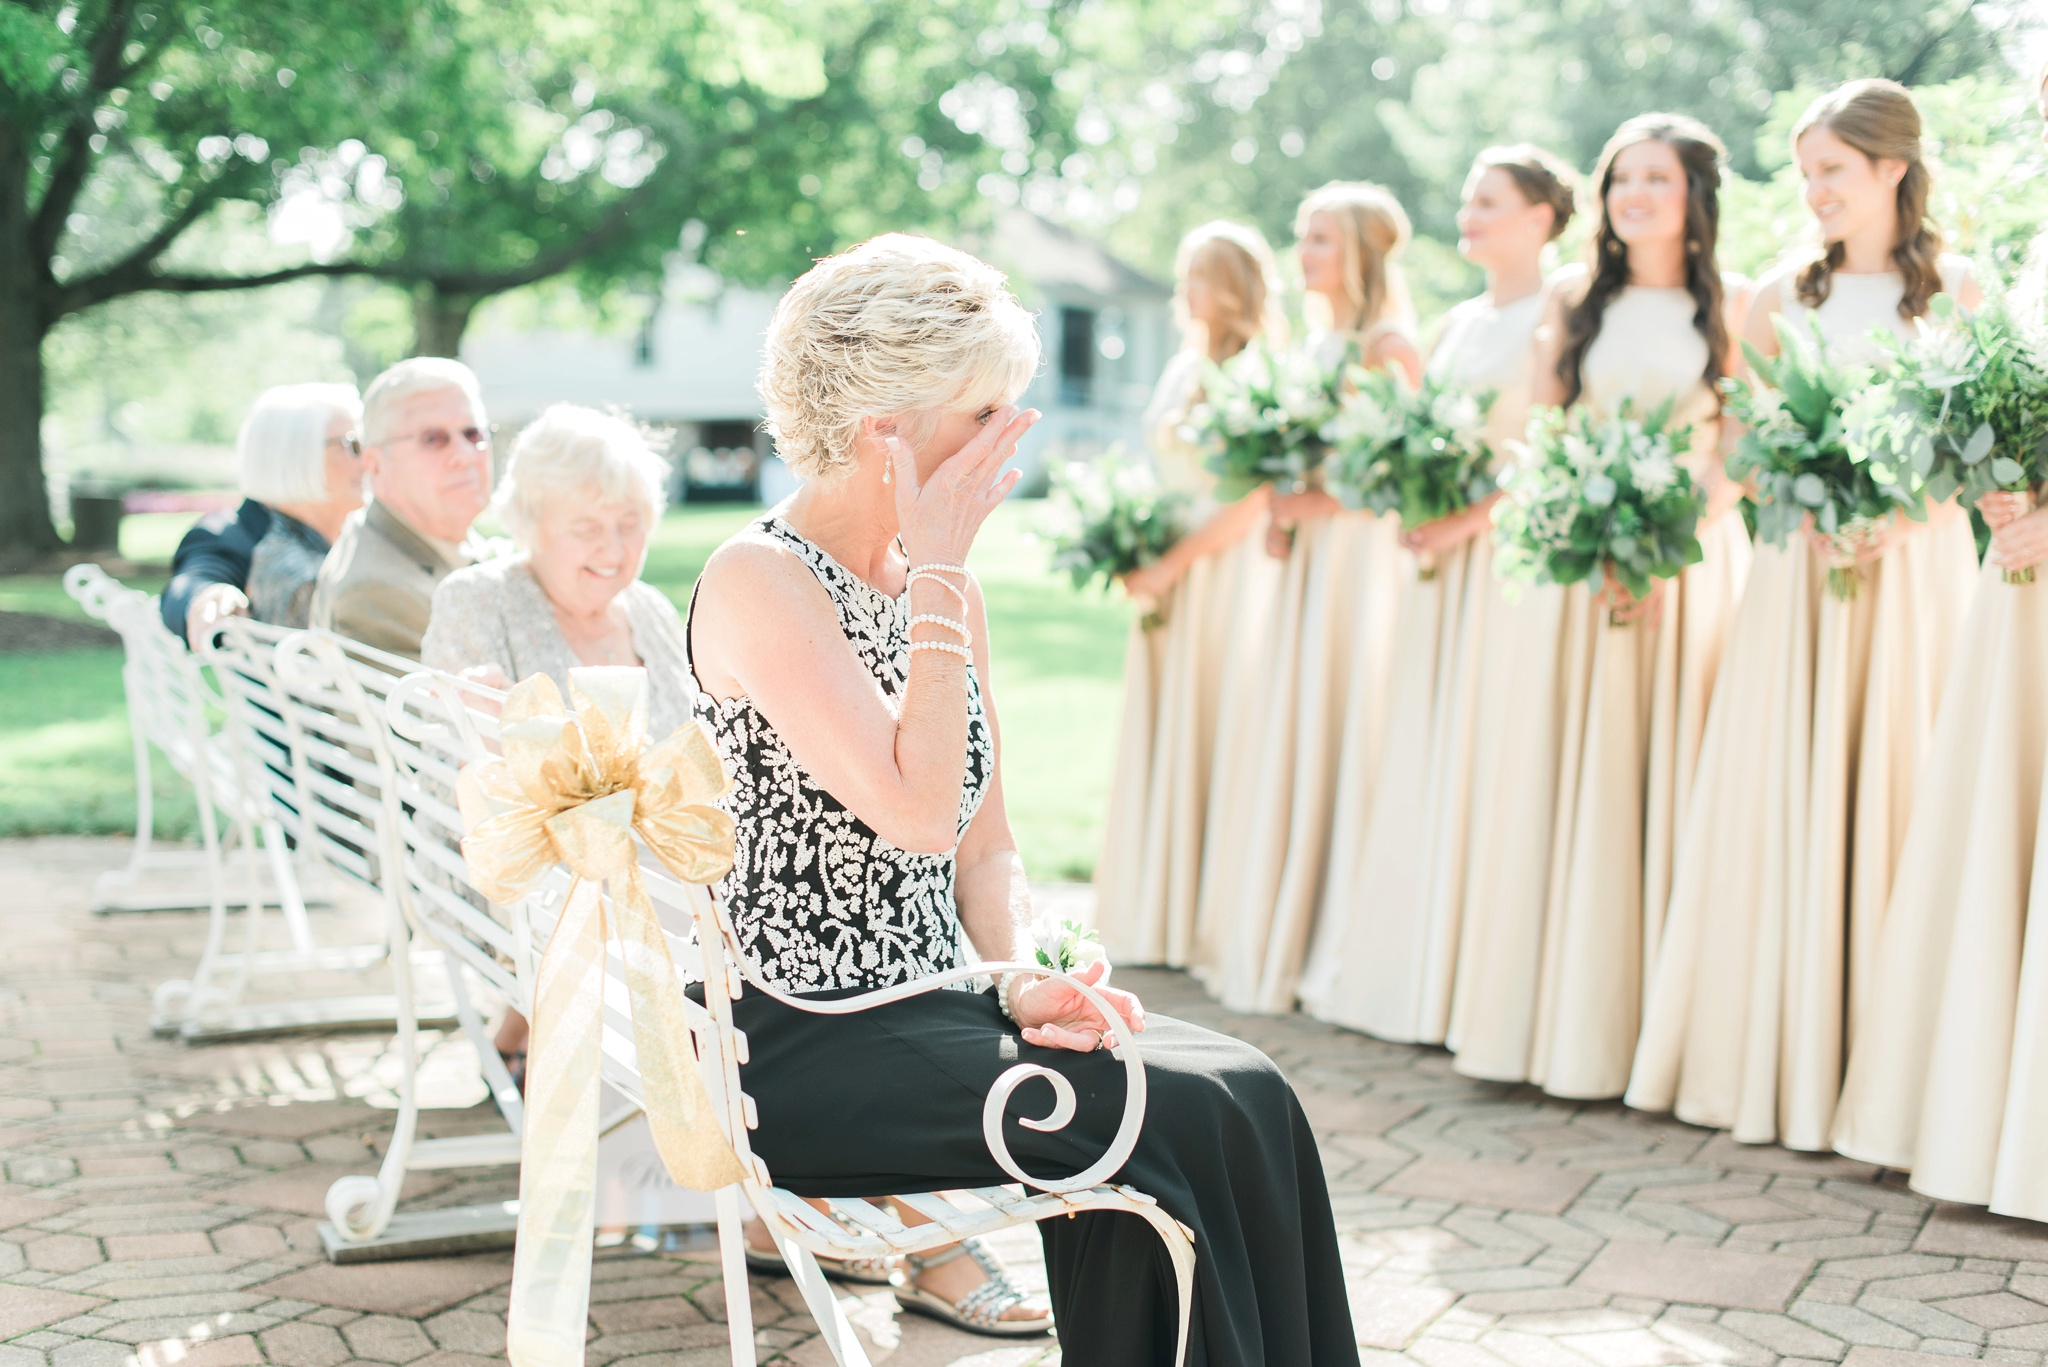 polen-farm-wedding-dayton-ohio-kalie-evan_0098.jpg